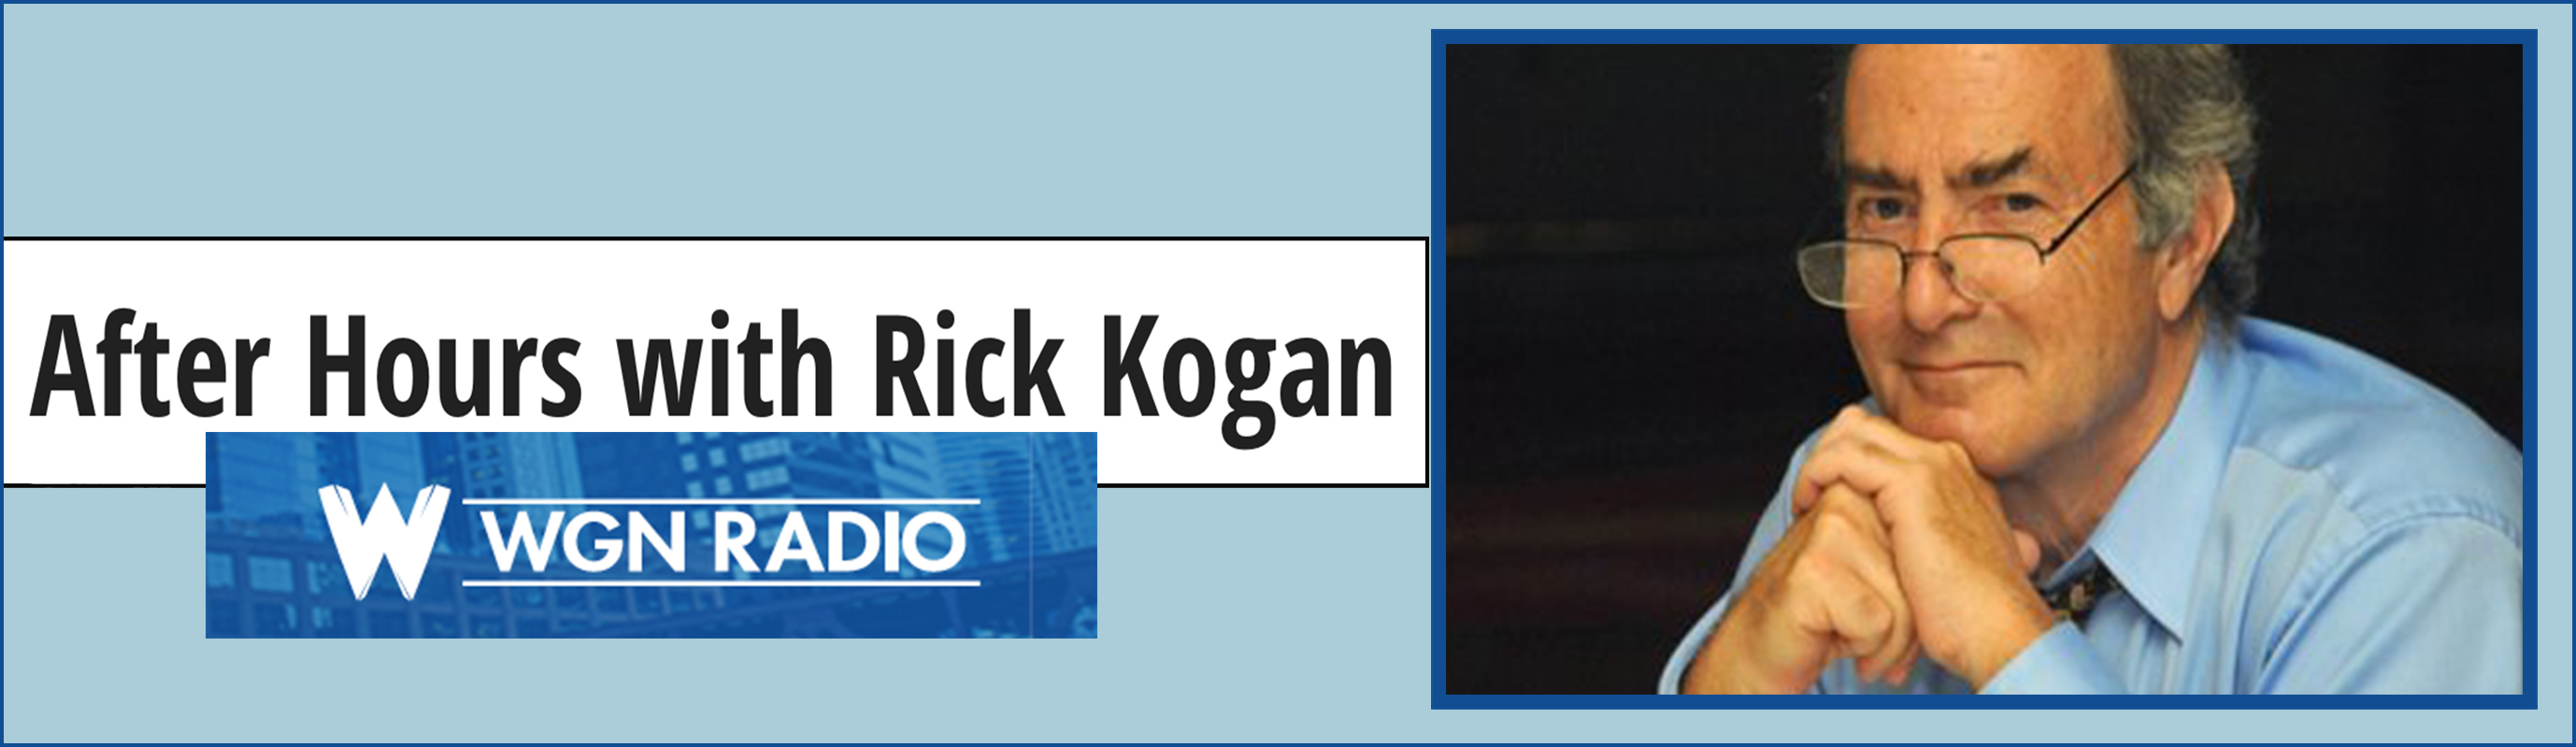 Rick Kogan featured image